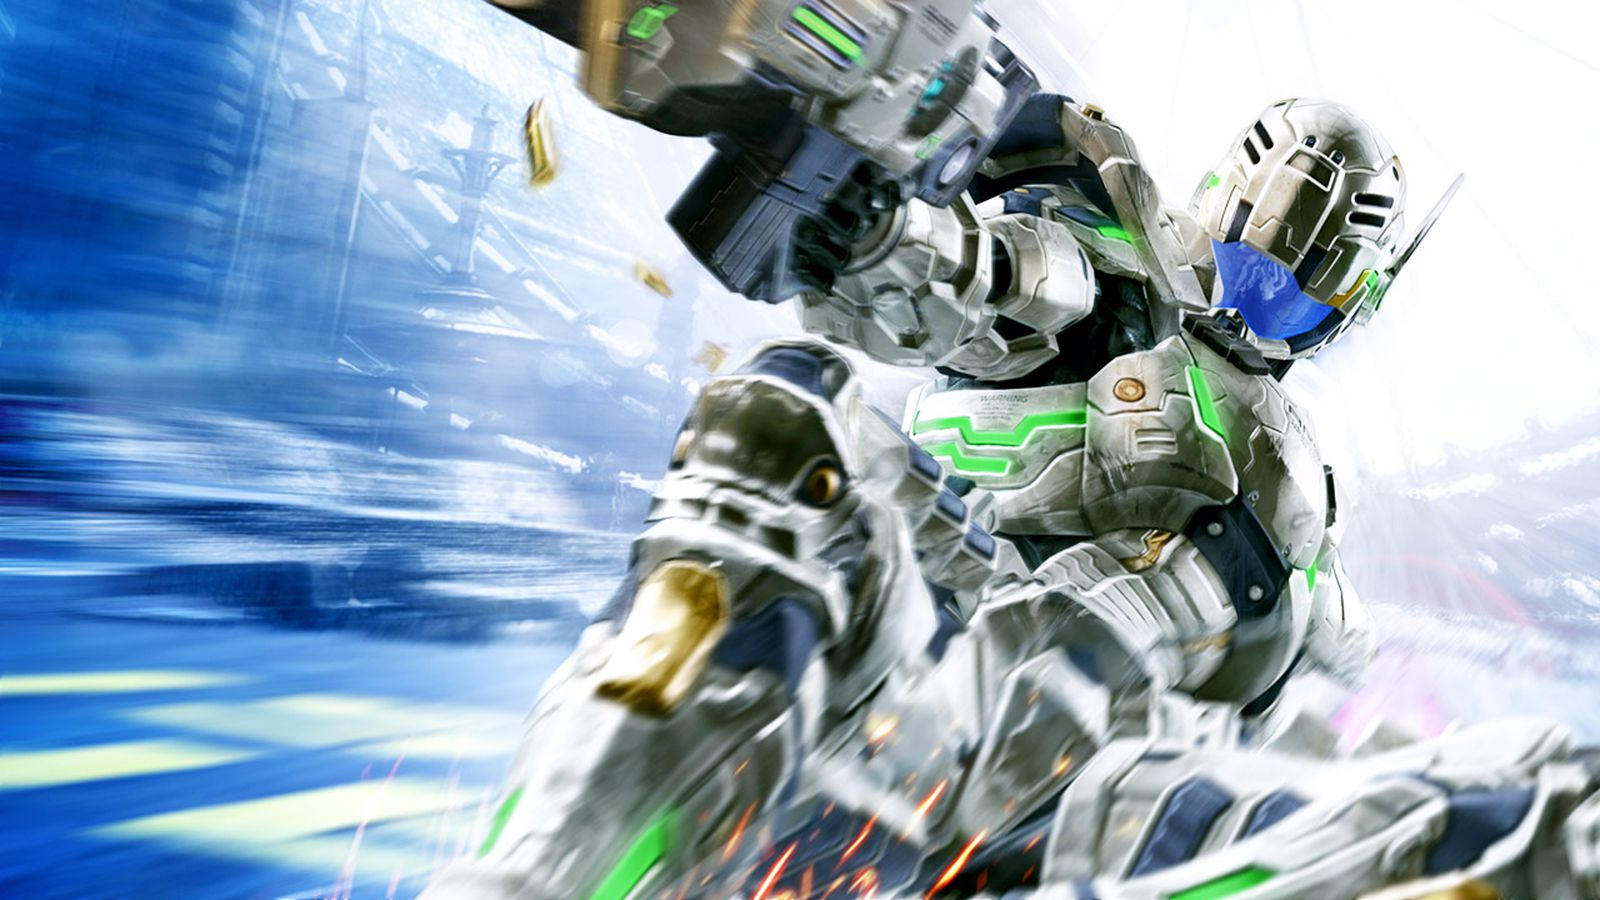 Vanquish is coming to PC